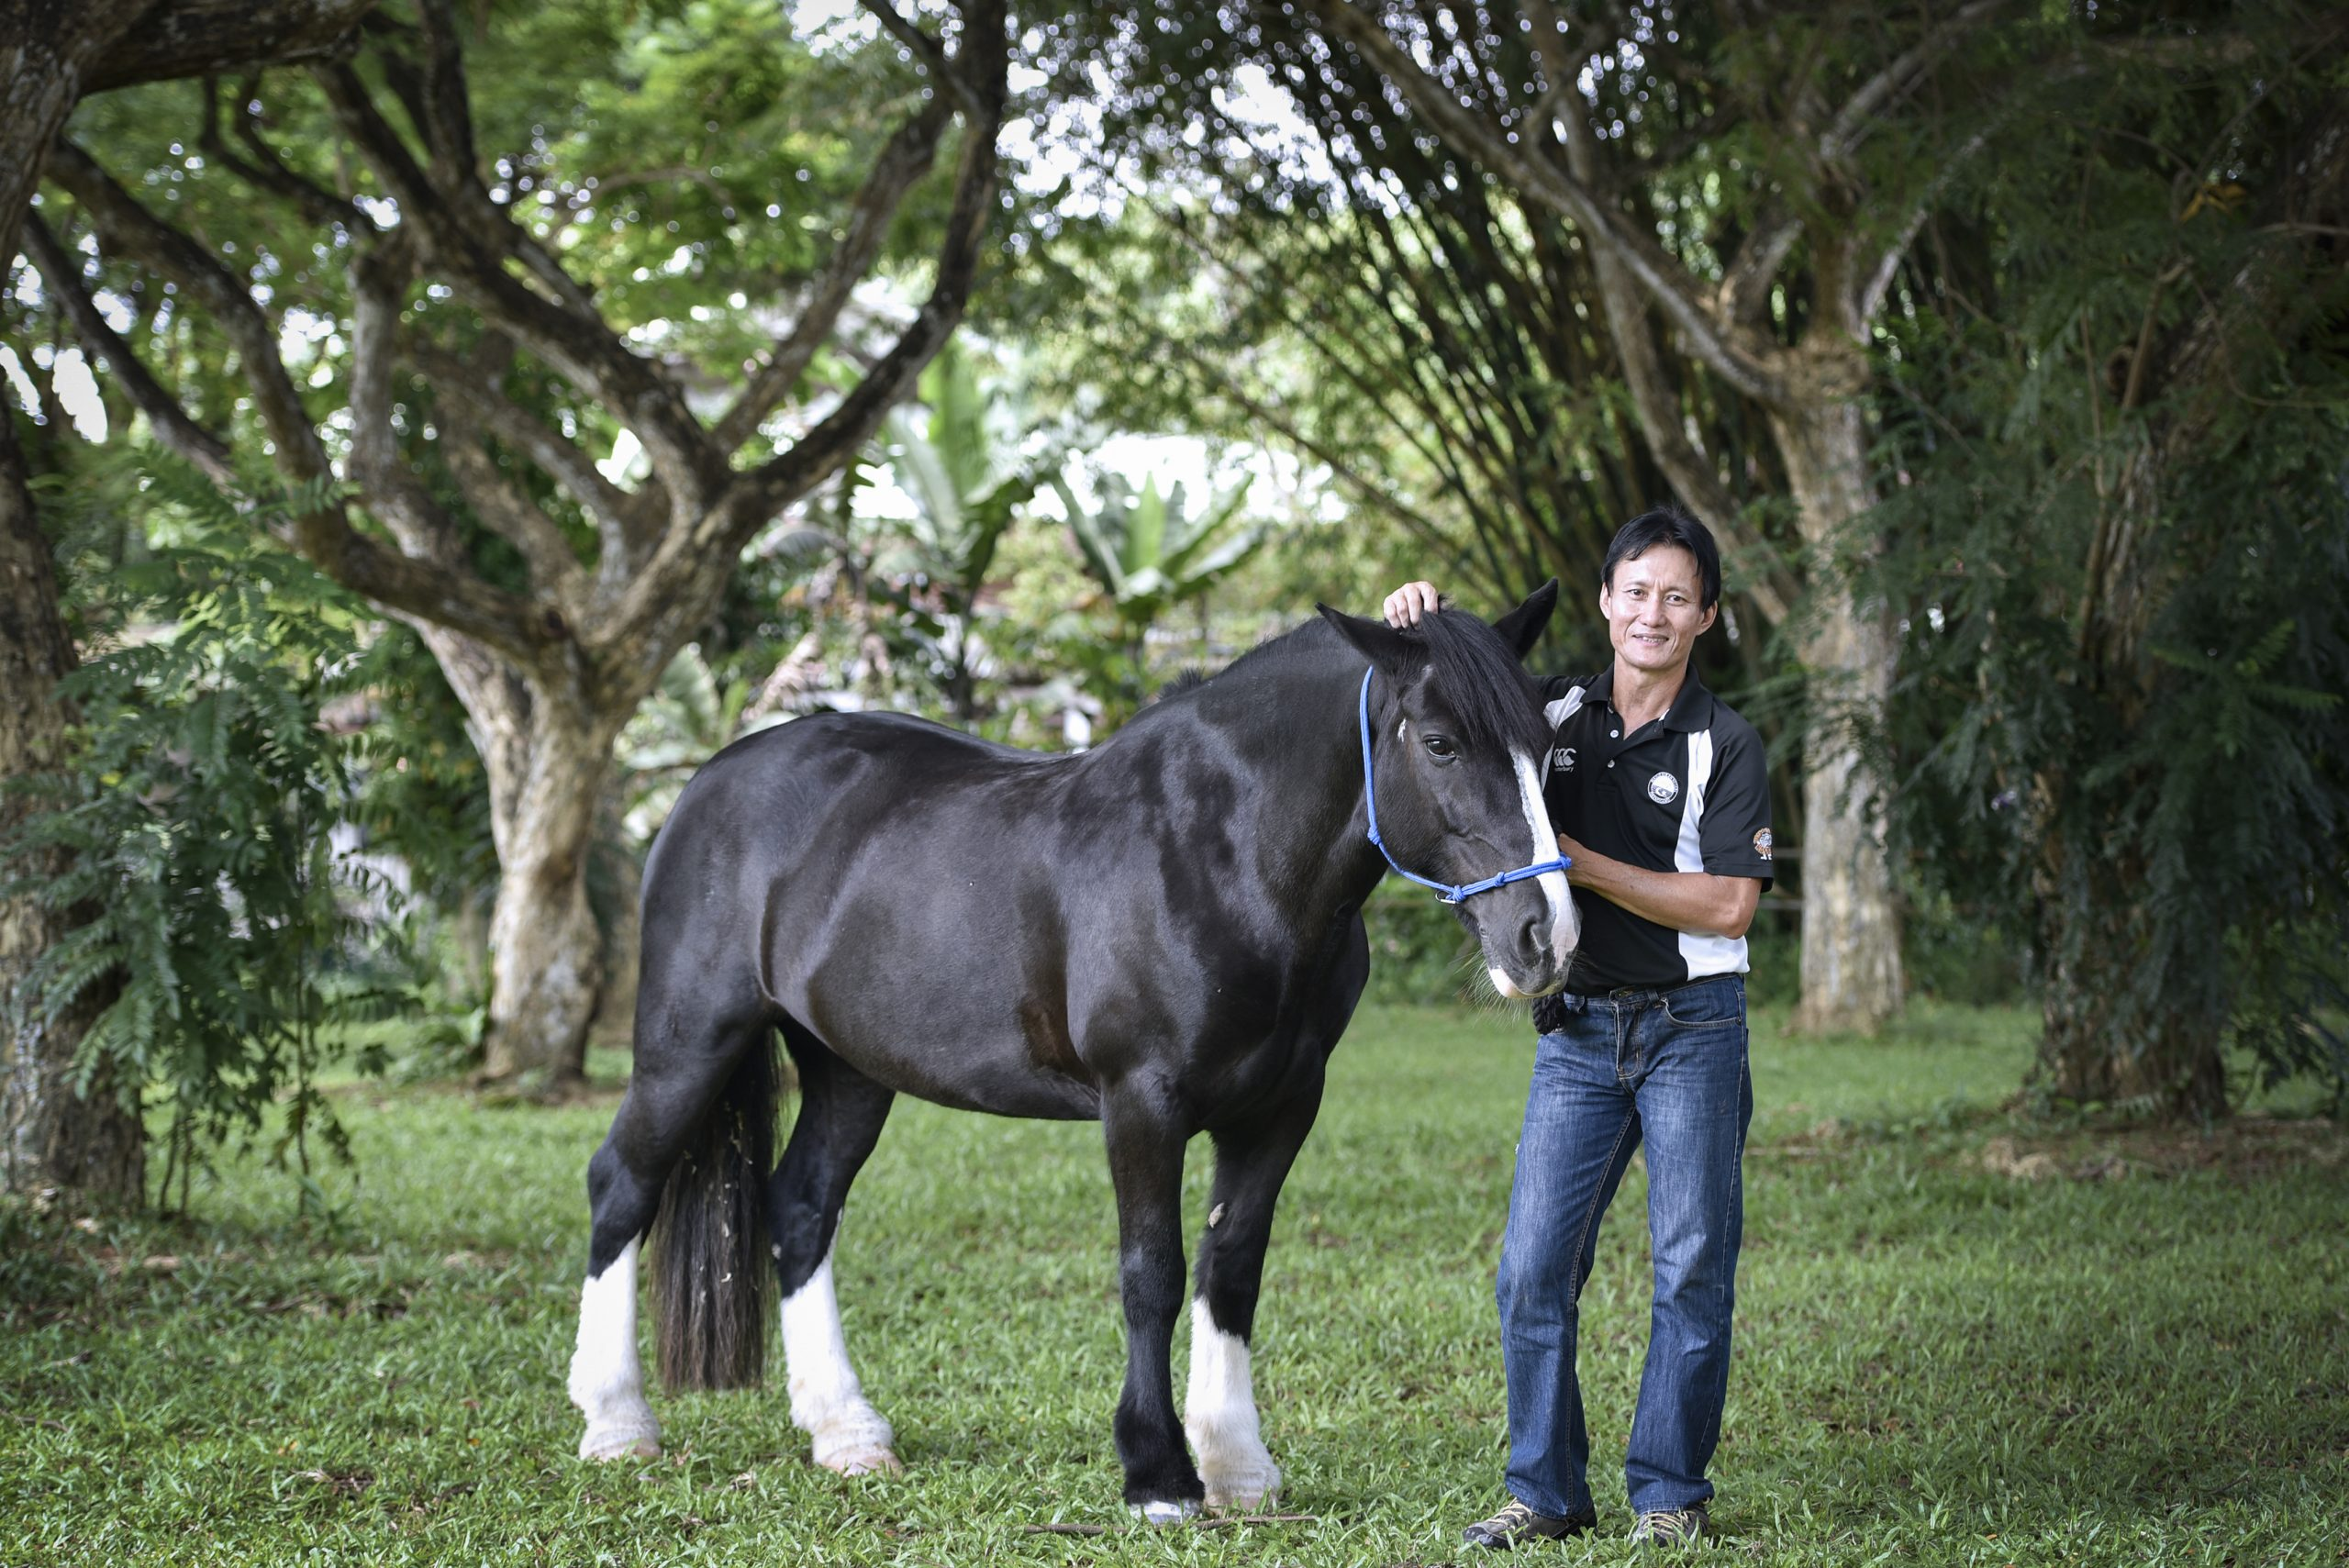 Mr Hazrin Chong Abdullah, qualified equestrian coach and riding instructor at RDA Singapore has spent the last three decades working with horses and now helps riders with special needs.